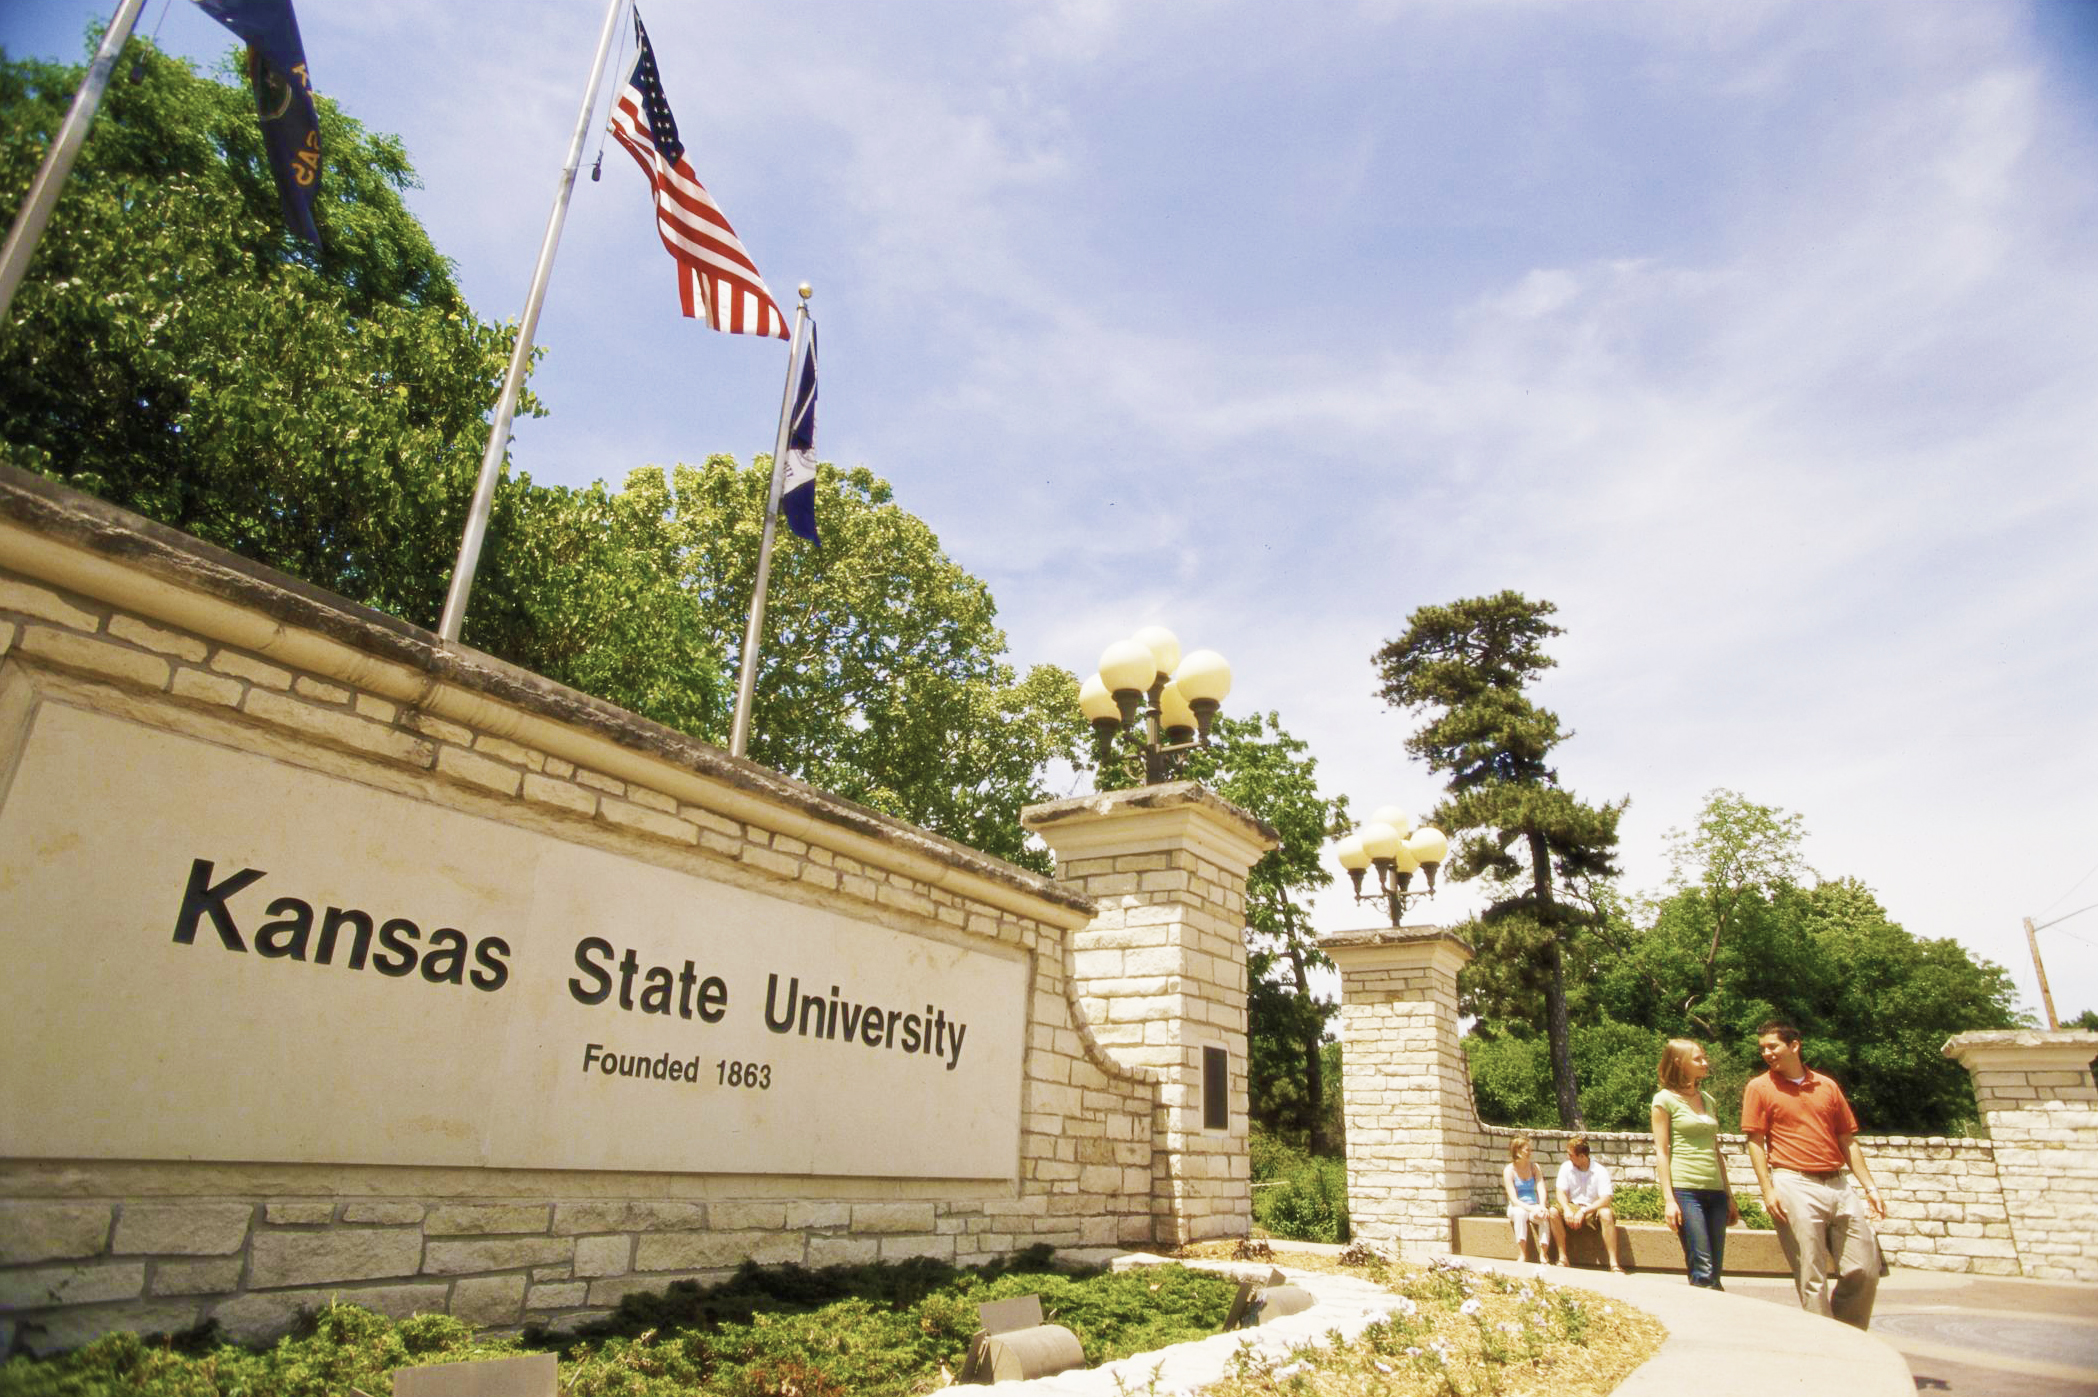 Kansas State University's campus in Manhattan.